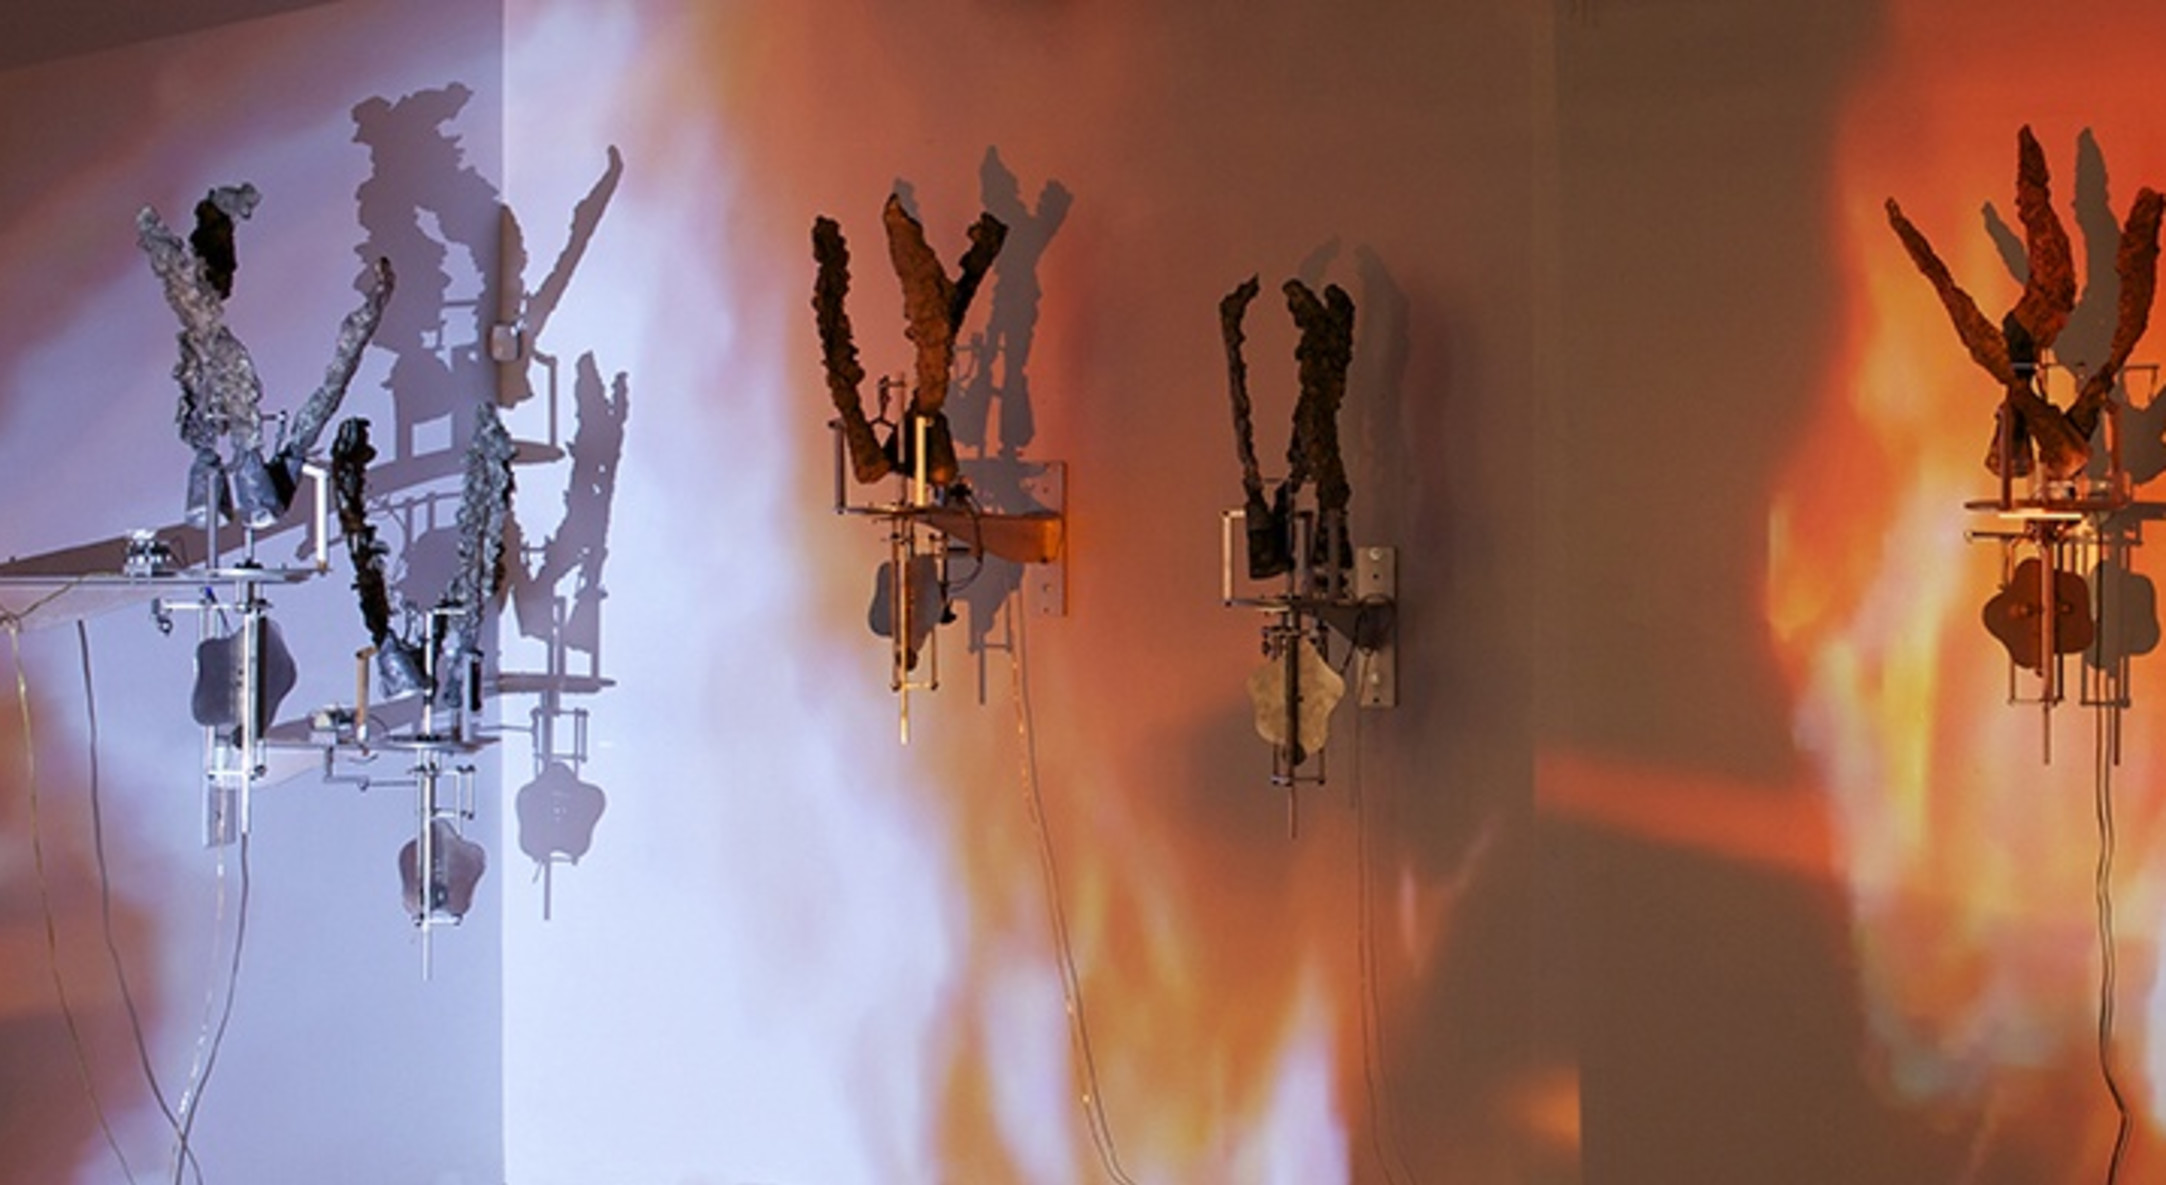 Carolee Schneemann, Flange 6rpm, 2011-2013, Foundry poured aluminum sculptures, motors 6rpm and projection, 48 x 28 x 36 in, 121.92 x 71.12 x 91.44 cm